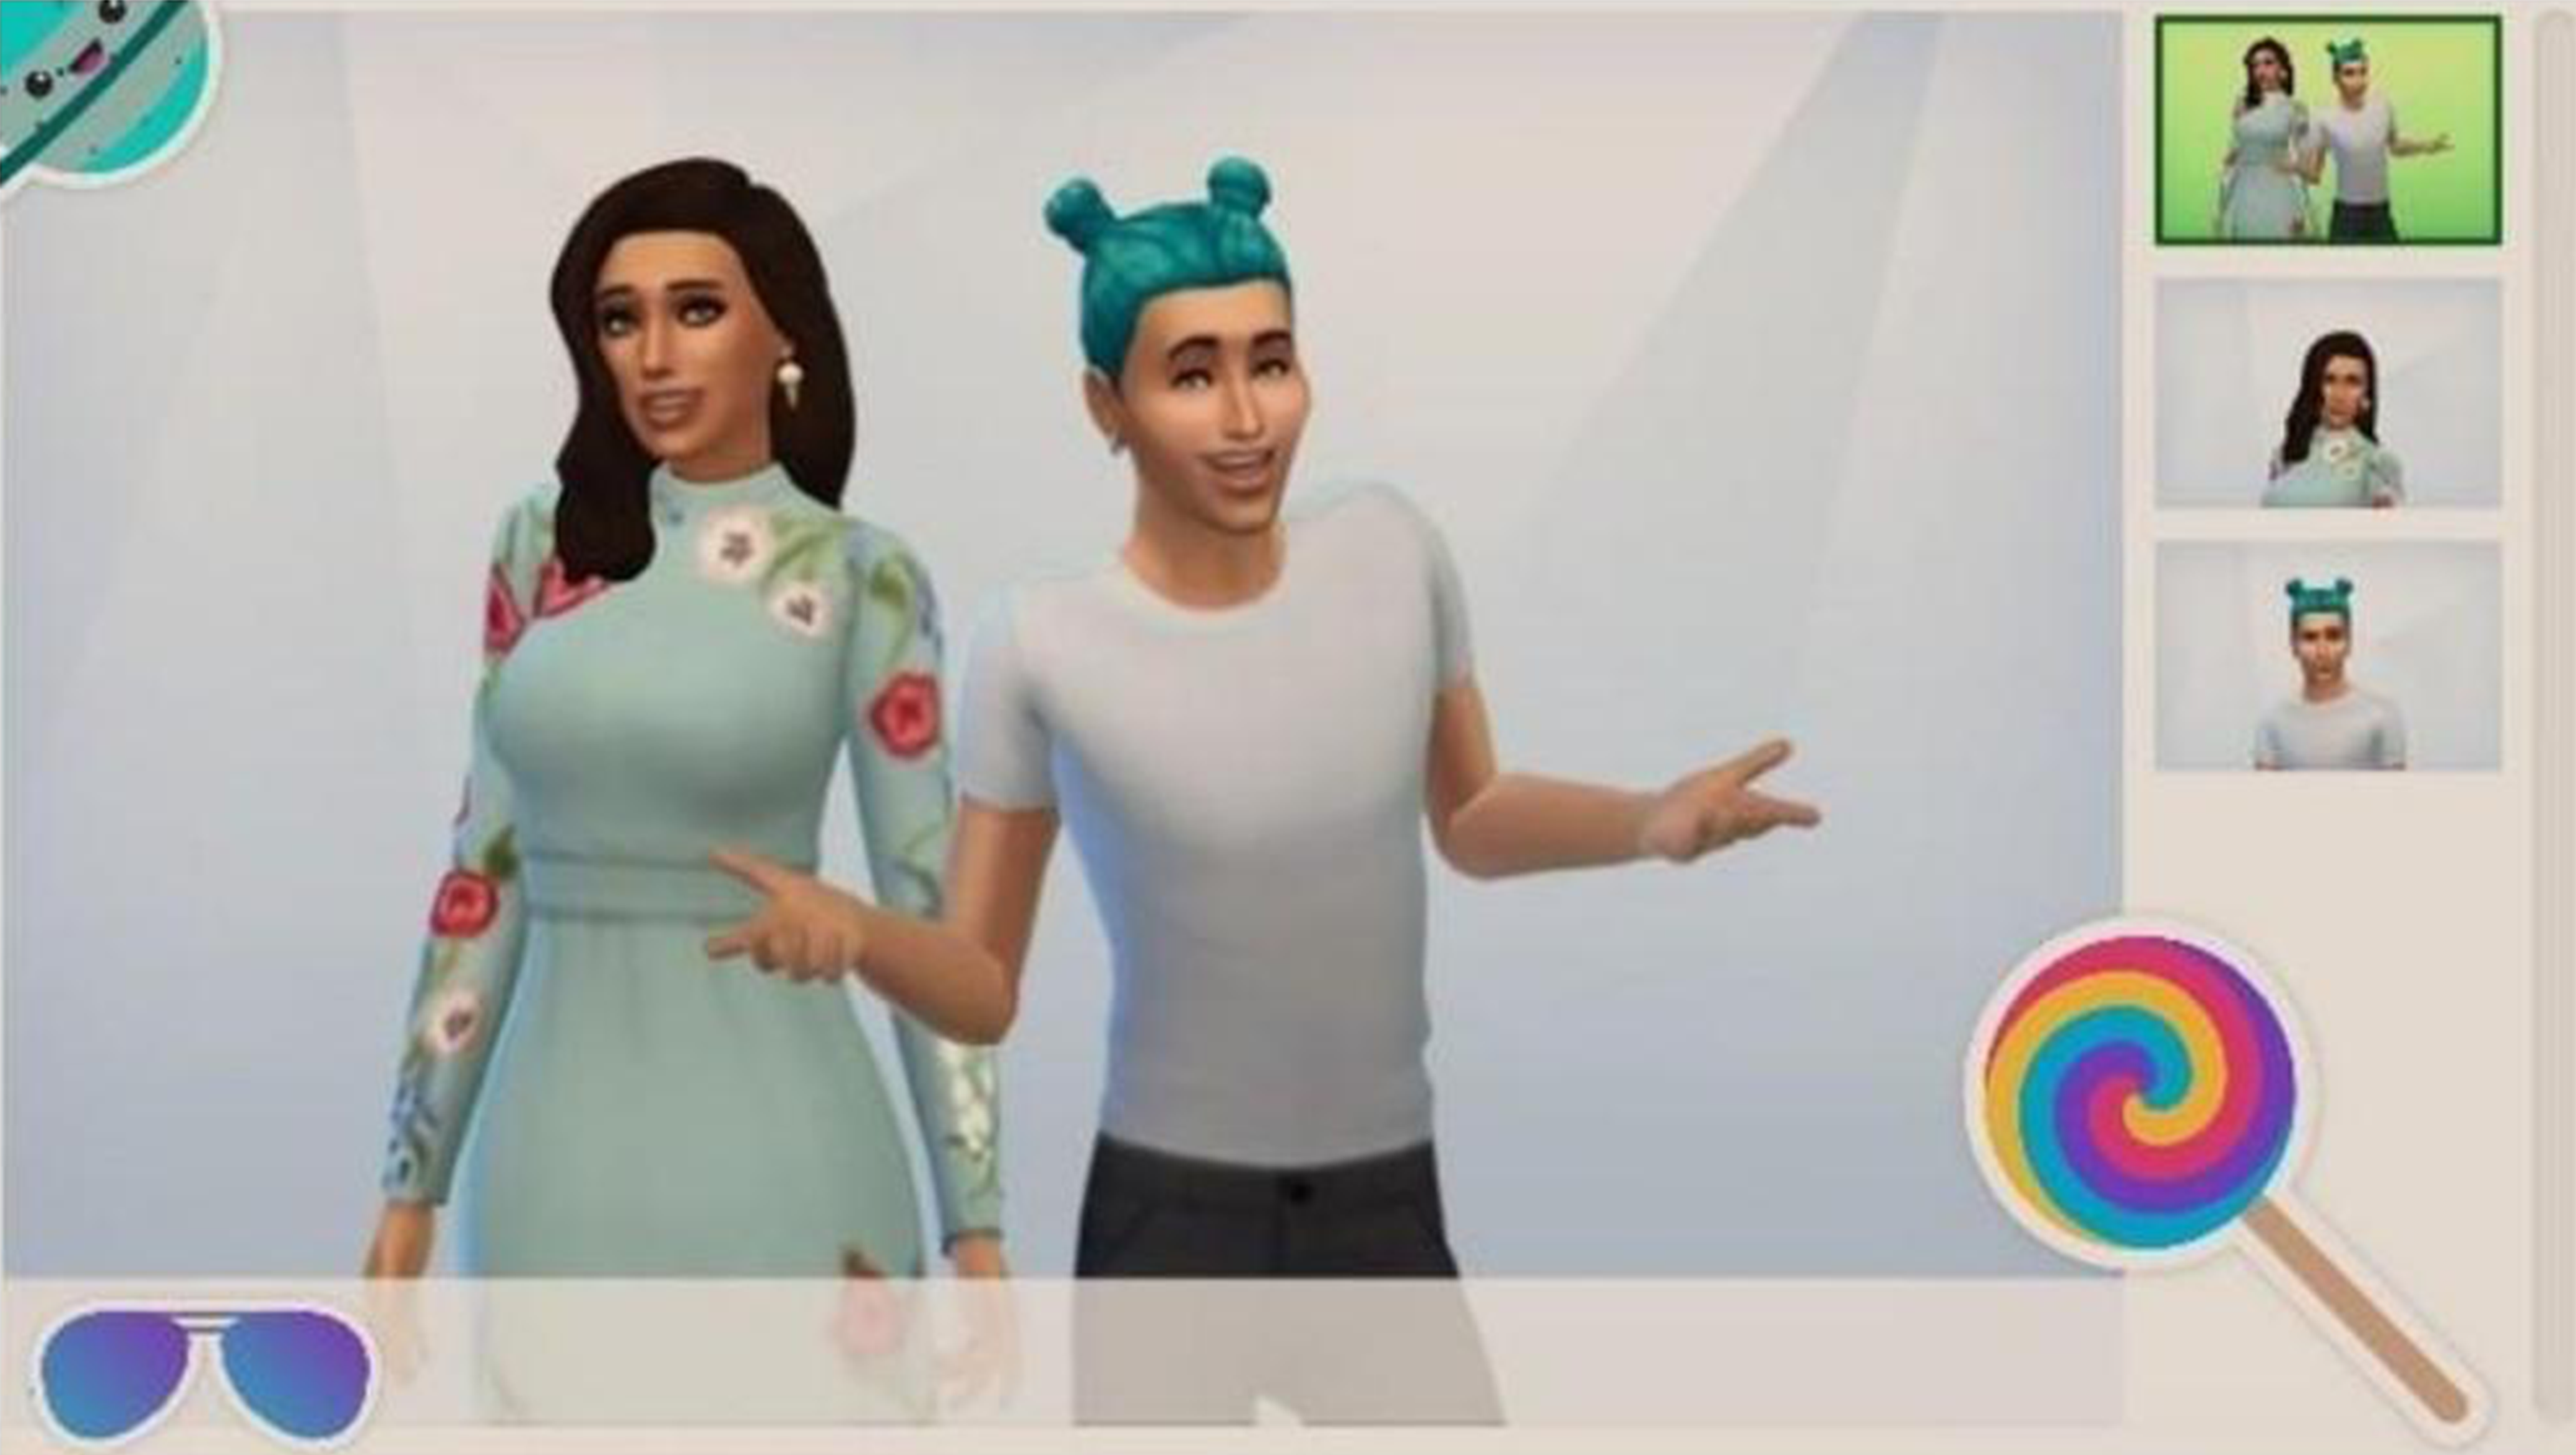 sims interview